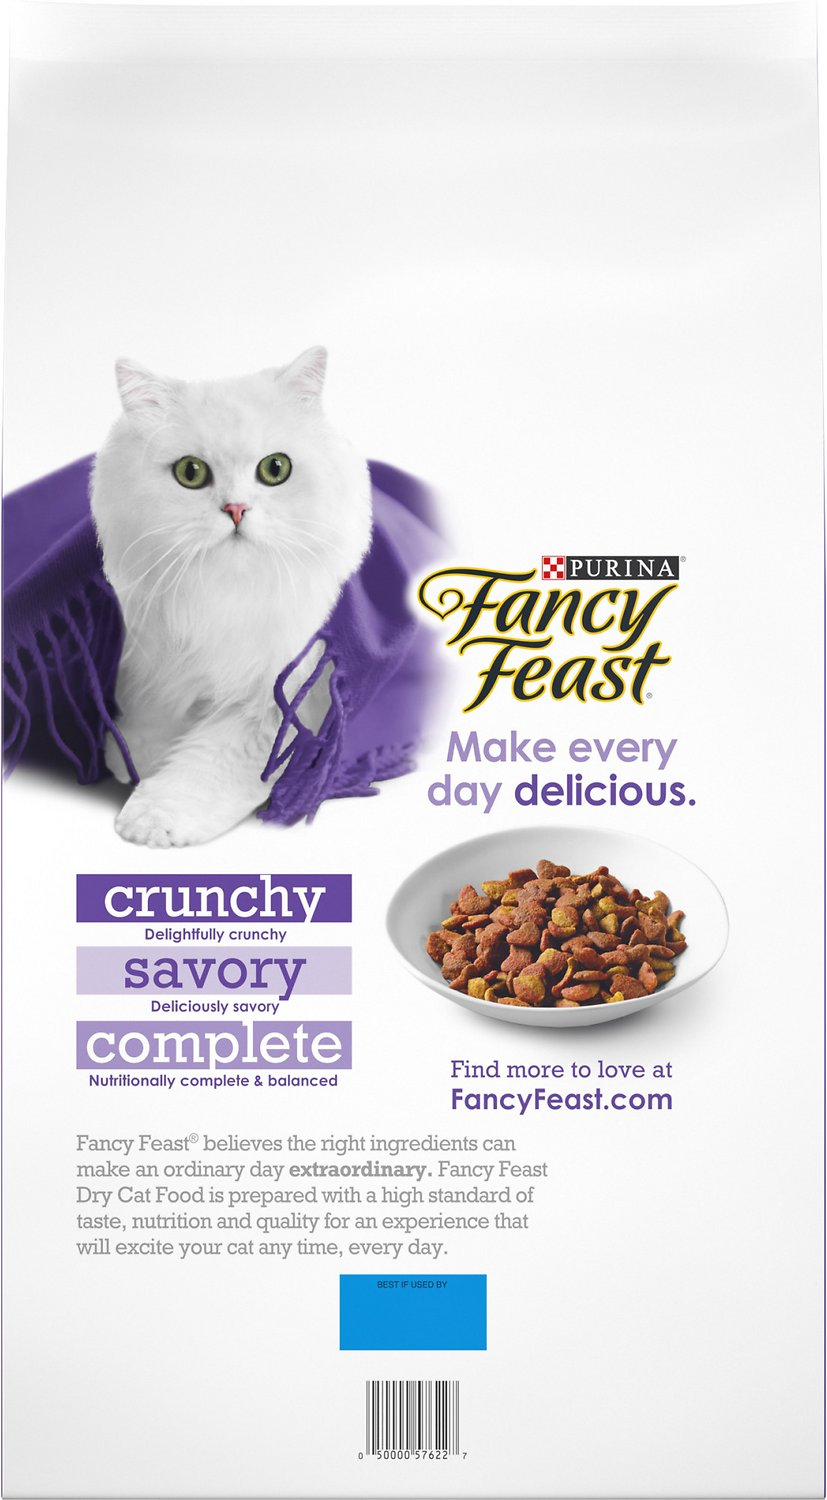 Fancy Feast Gourmet Dry Cat Food